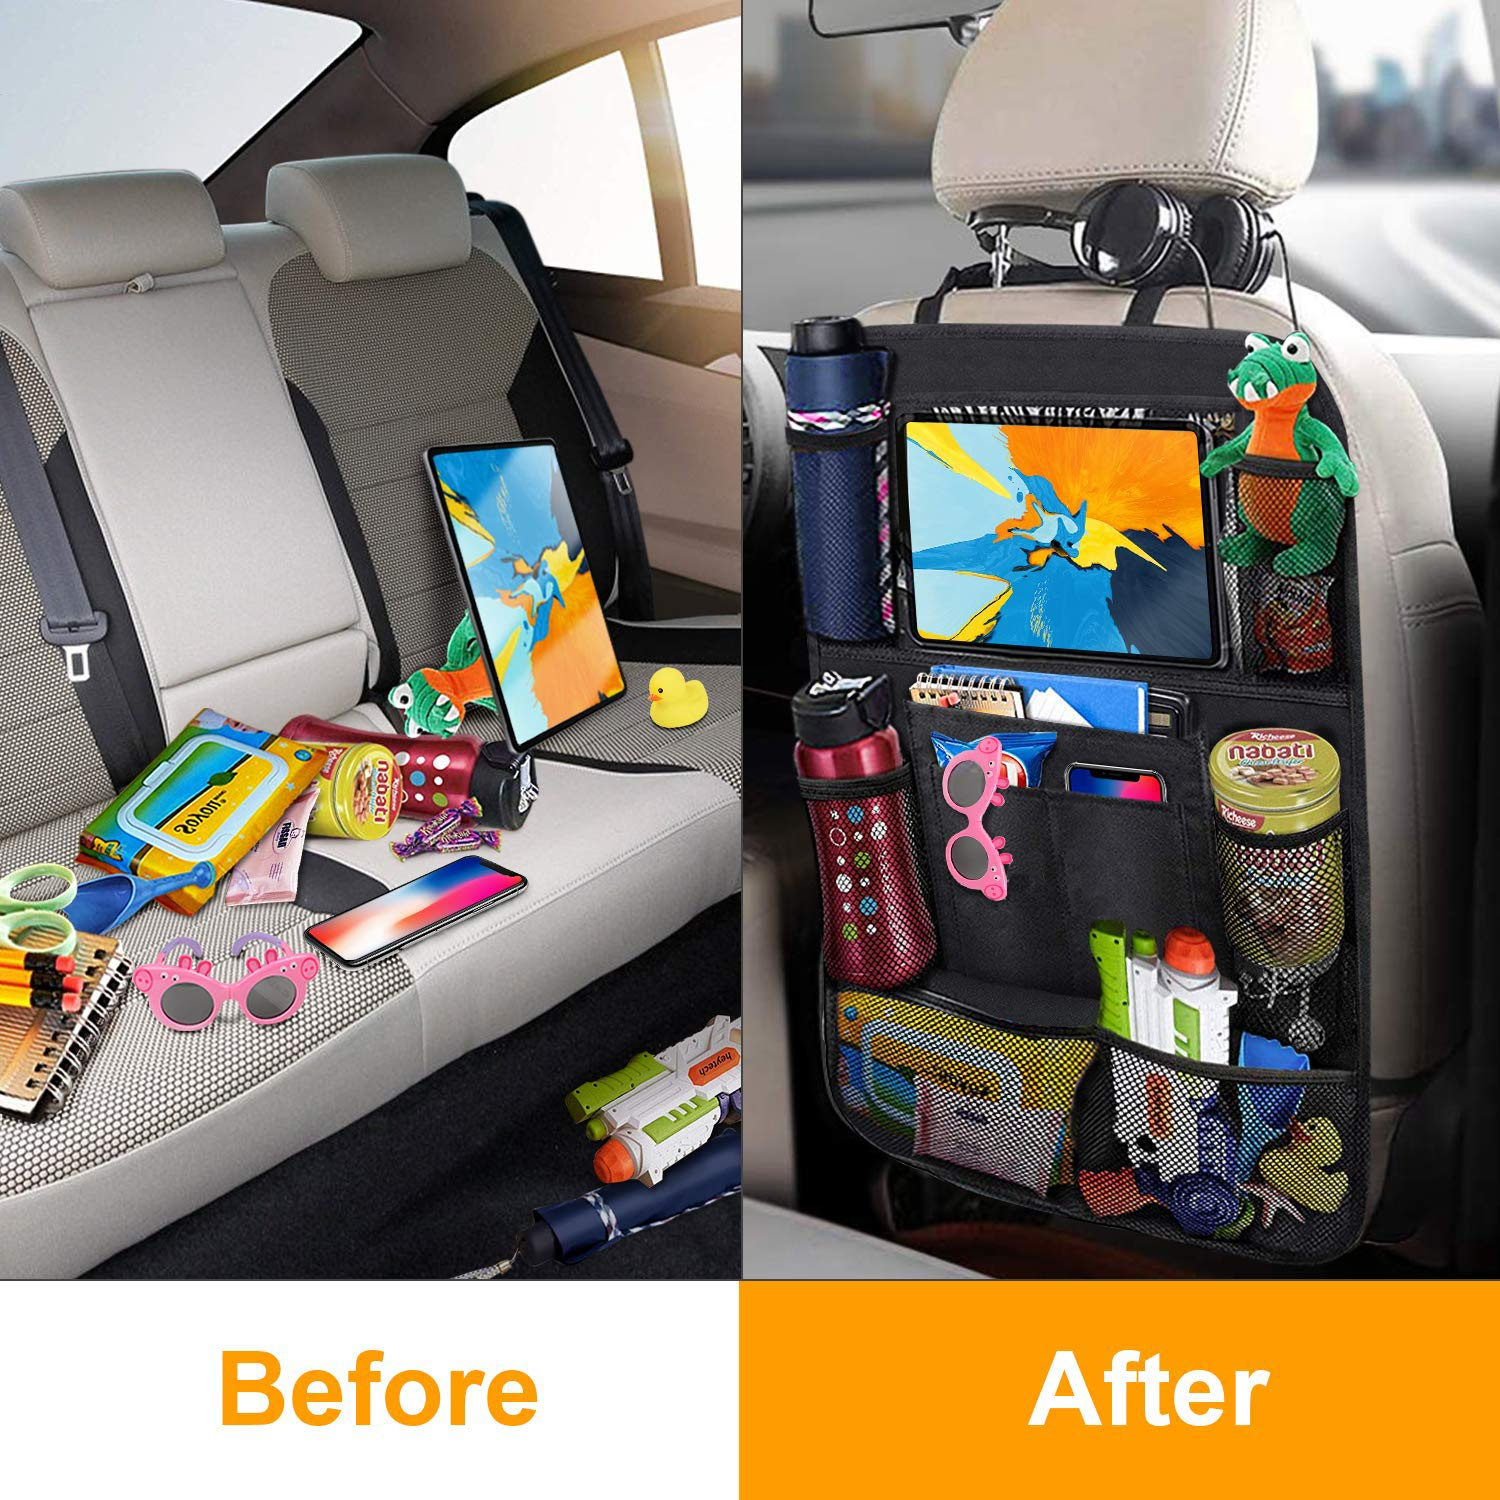 Car Backseat Organizer Kick Mats Car Back Seat Protector Mat with 10.1 Touch Screen Tablet Holder 2Pcs 11 Storage Pockets Auto Seat Cover Organizer for Kids Toy Bottle Drink Vehicle Travel Accessory